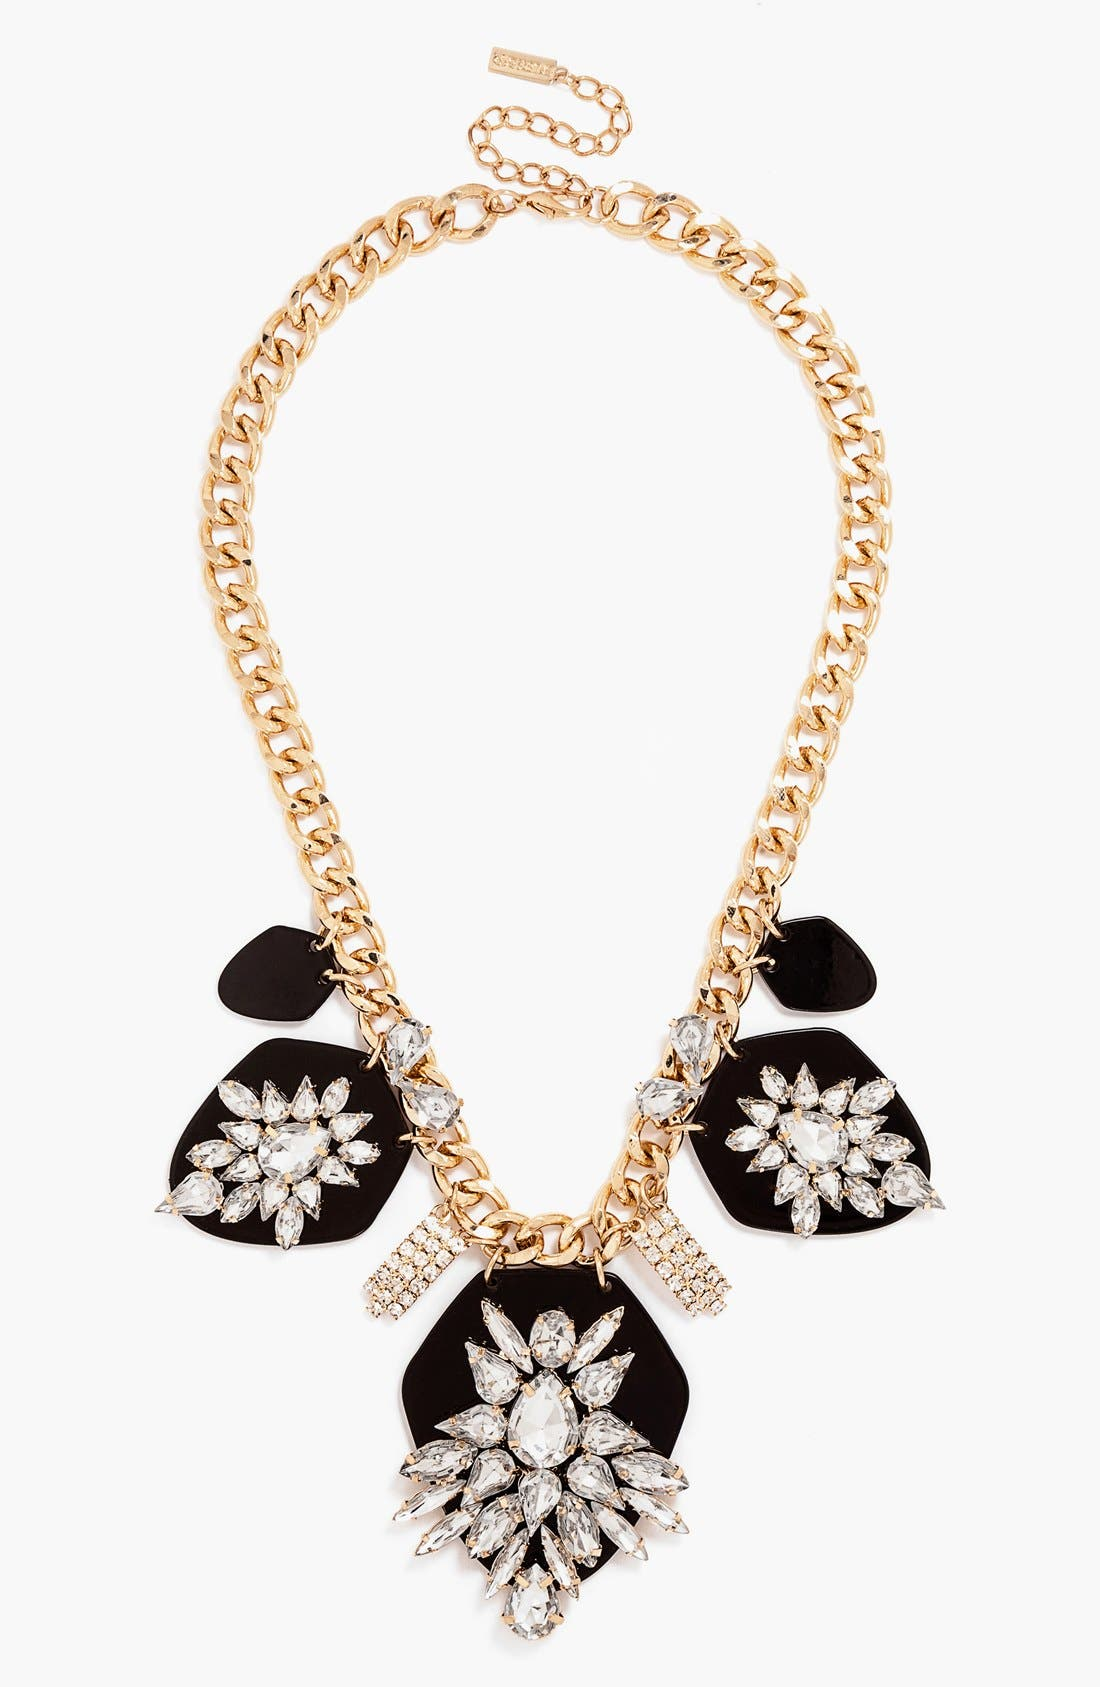 BAUBLEBAR, 'Constellation' Frontal Necklace, Main thumbnail 1, color, 001